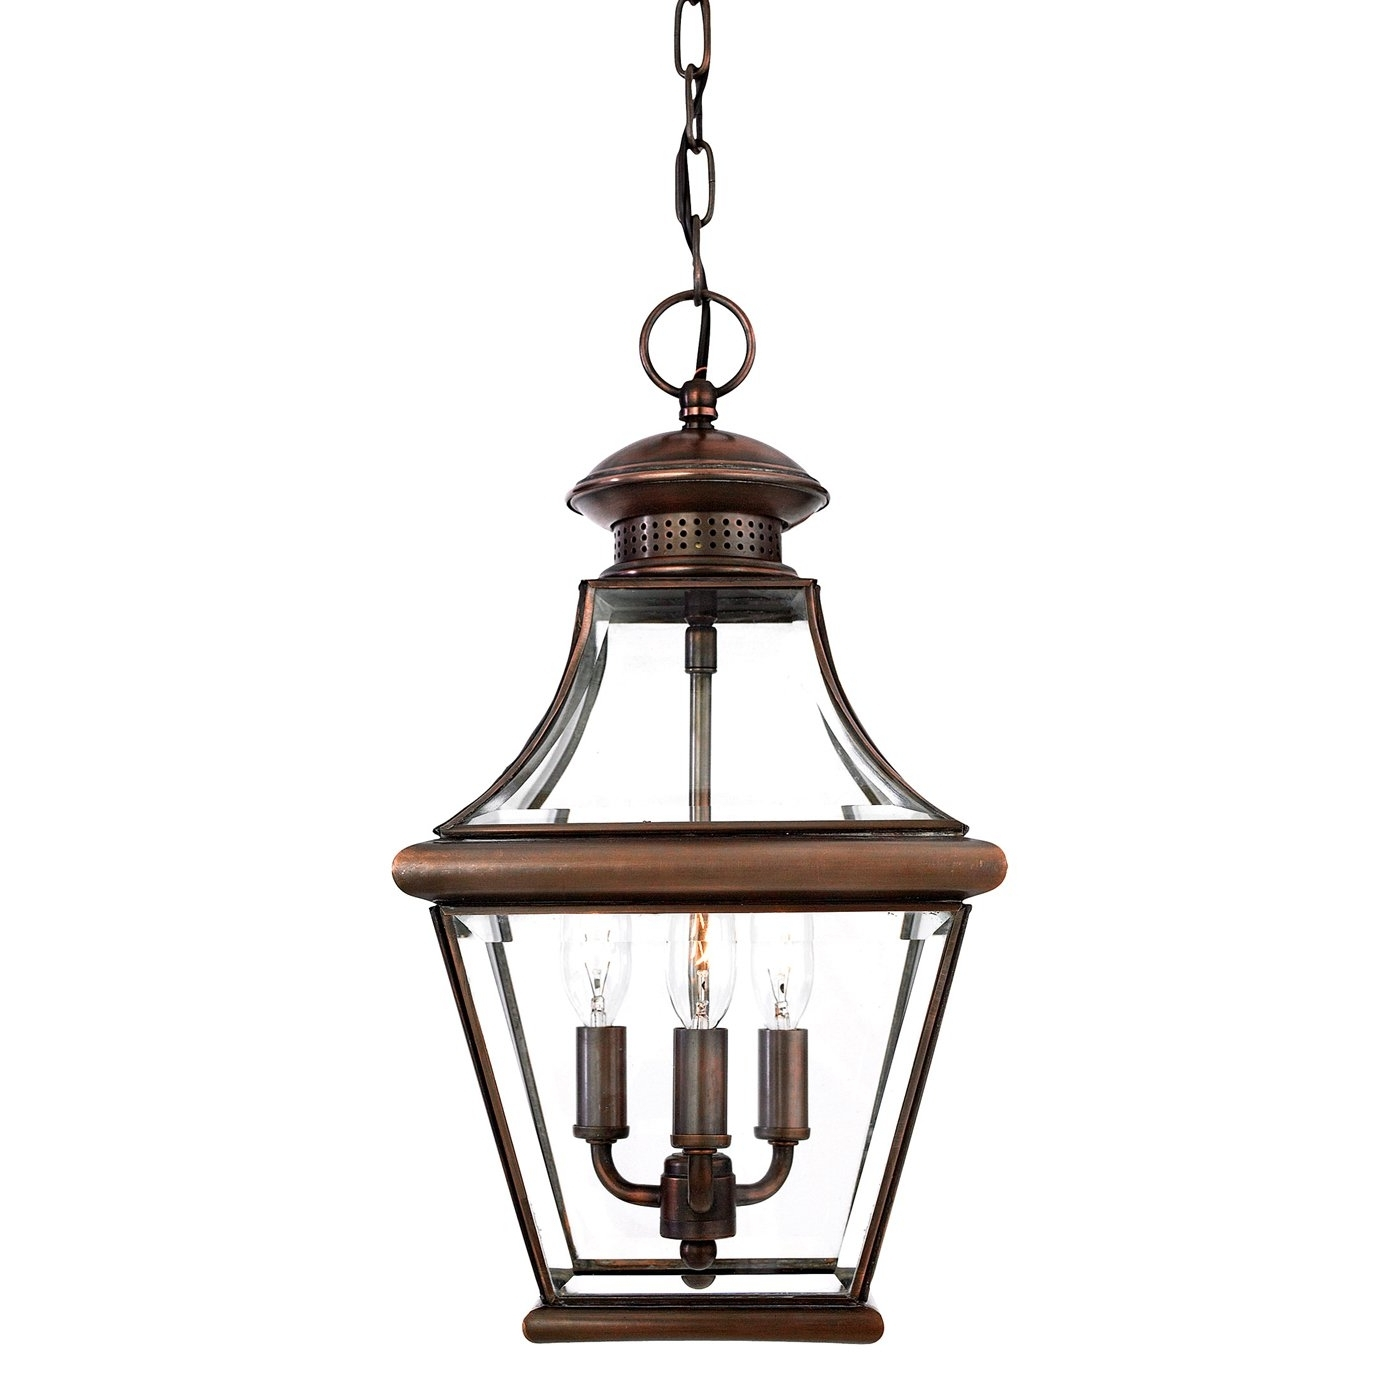 Designer Outdoor Pendant Light Fixtures Home Depot: 15 Outstanding Intended For Fashionable Outdoor Hanging Lights At Home Depot (View 19 of 20)